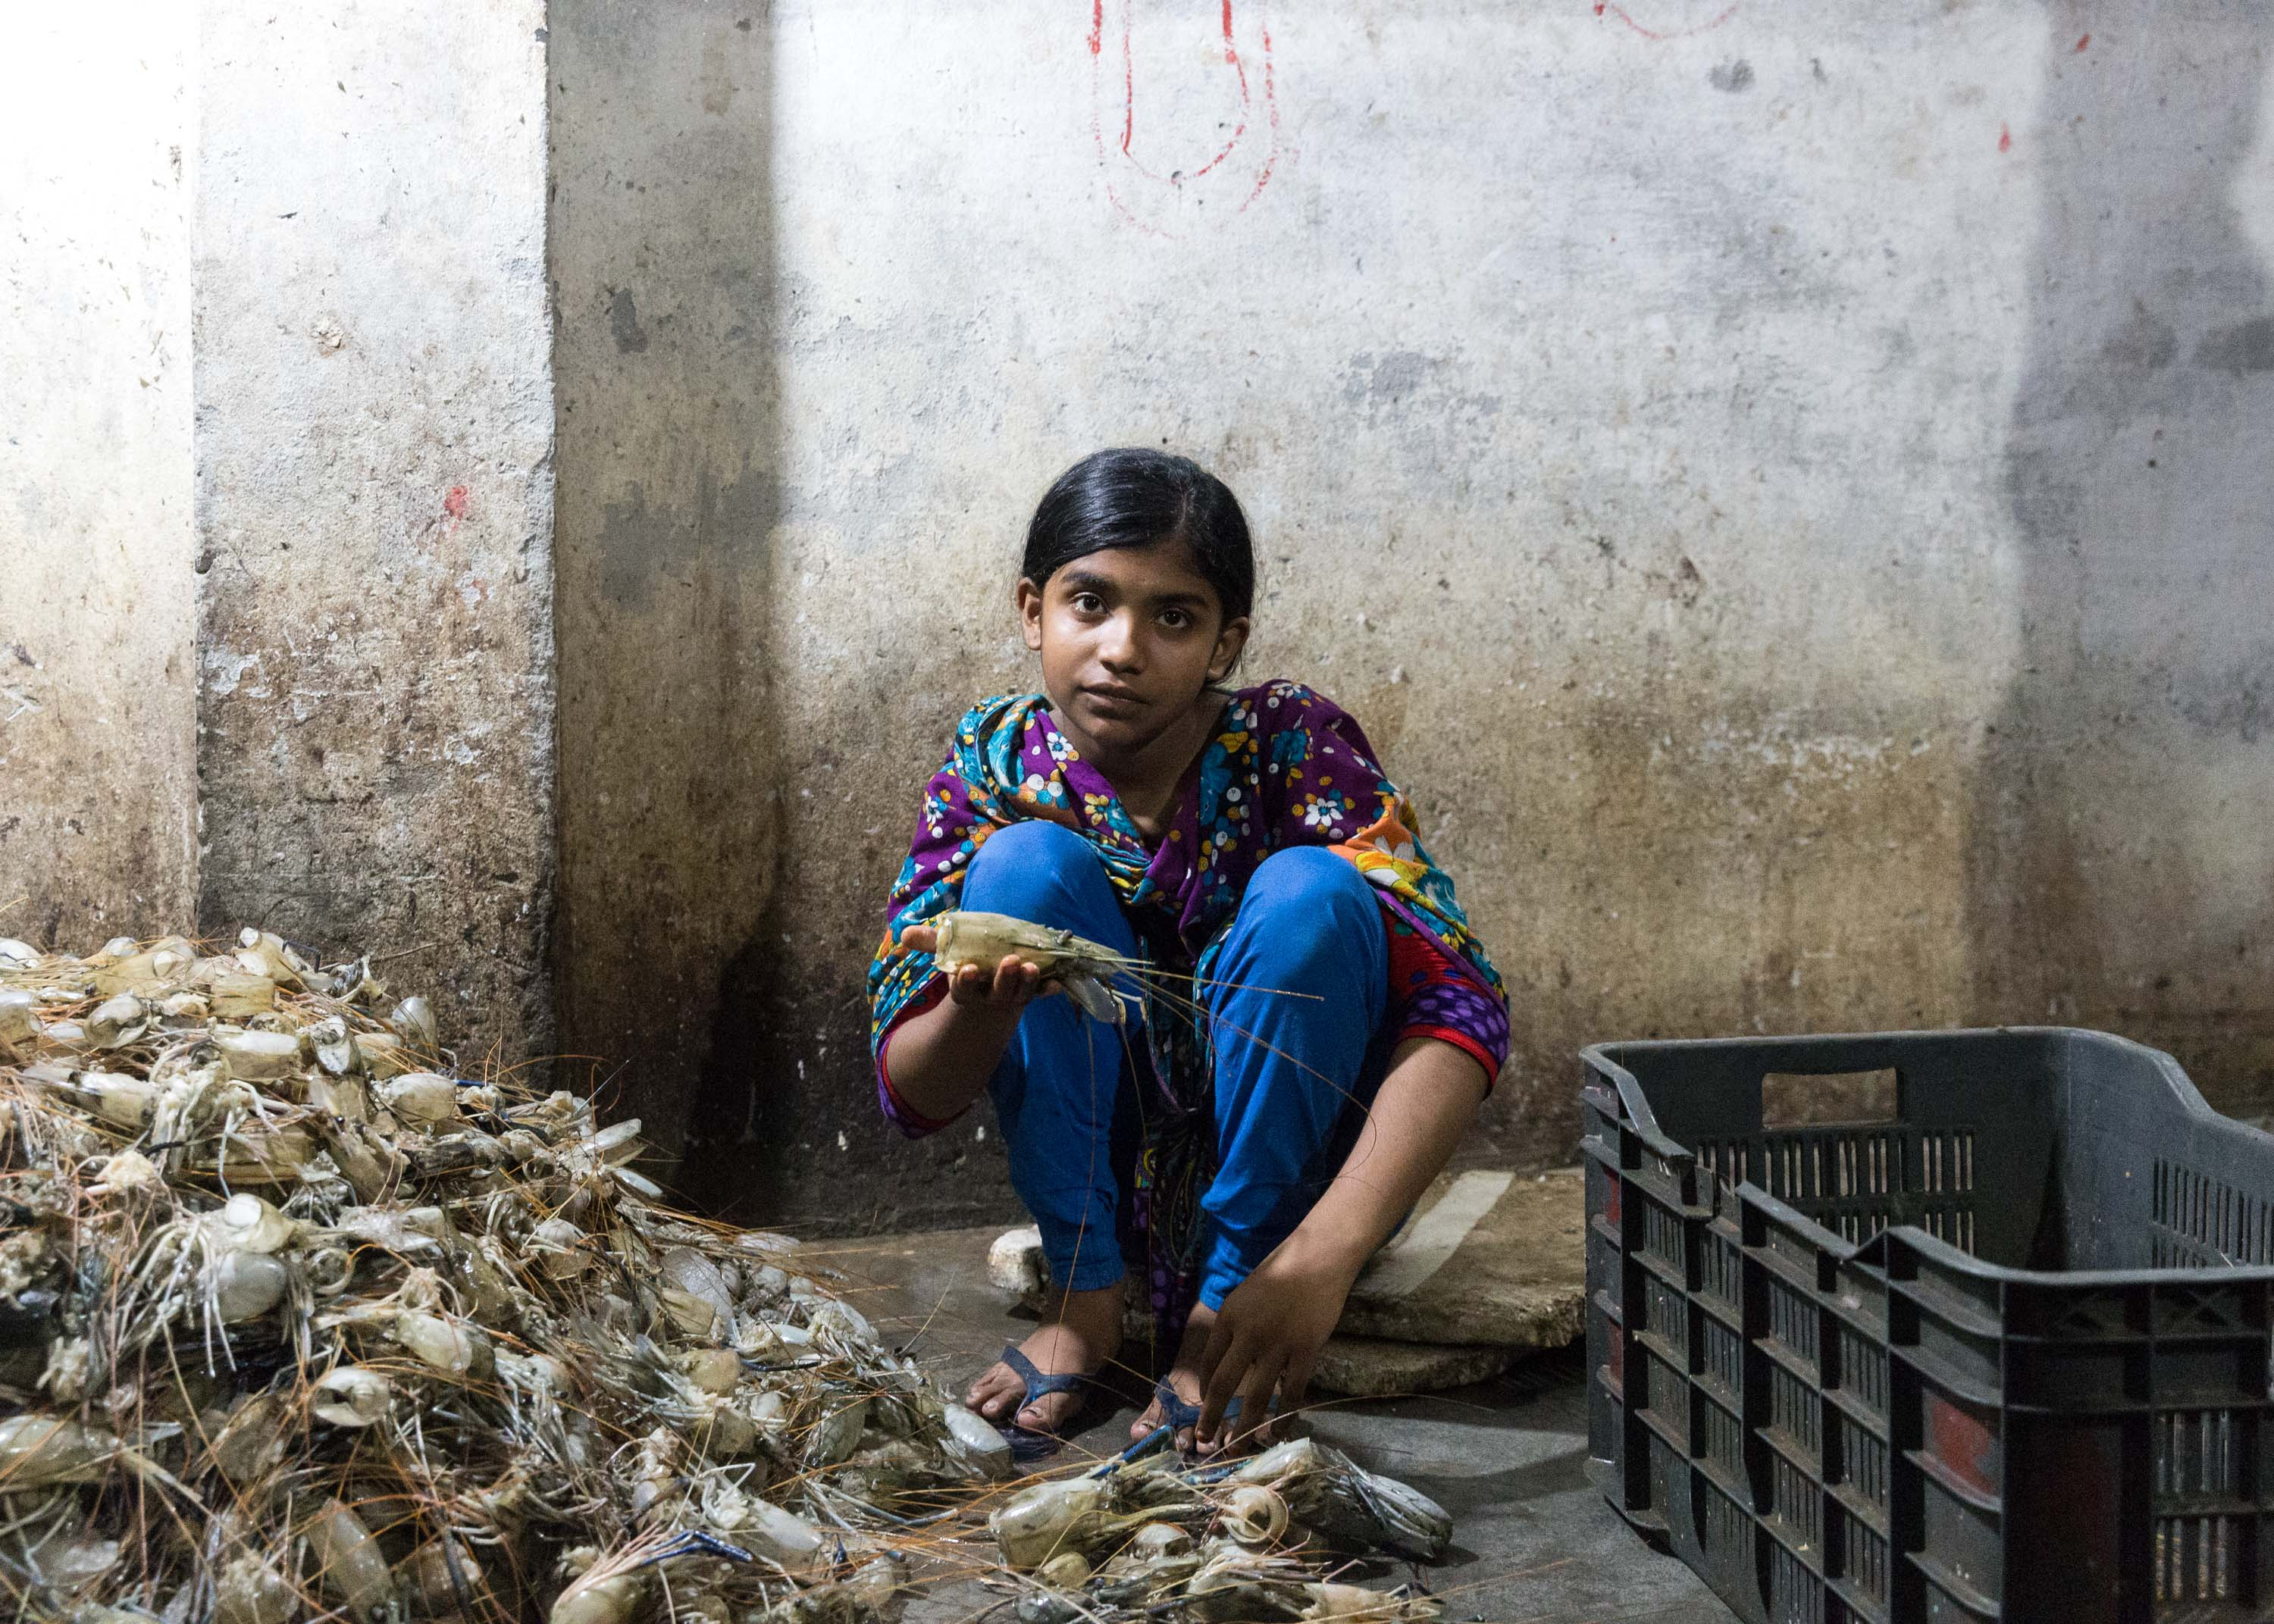 Photographer Sophia Hsin Documents Child Laborers in Bangladesh